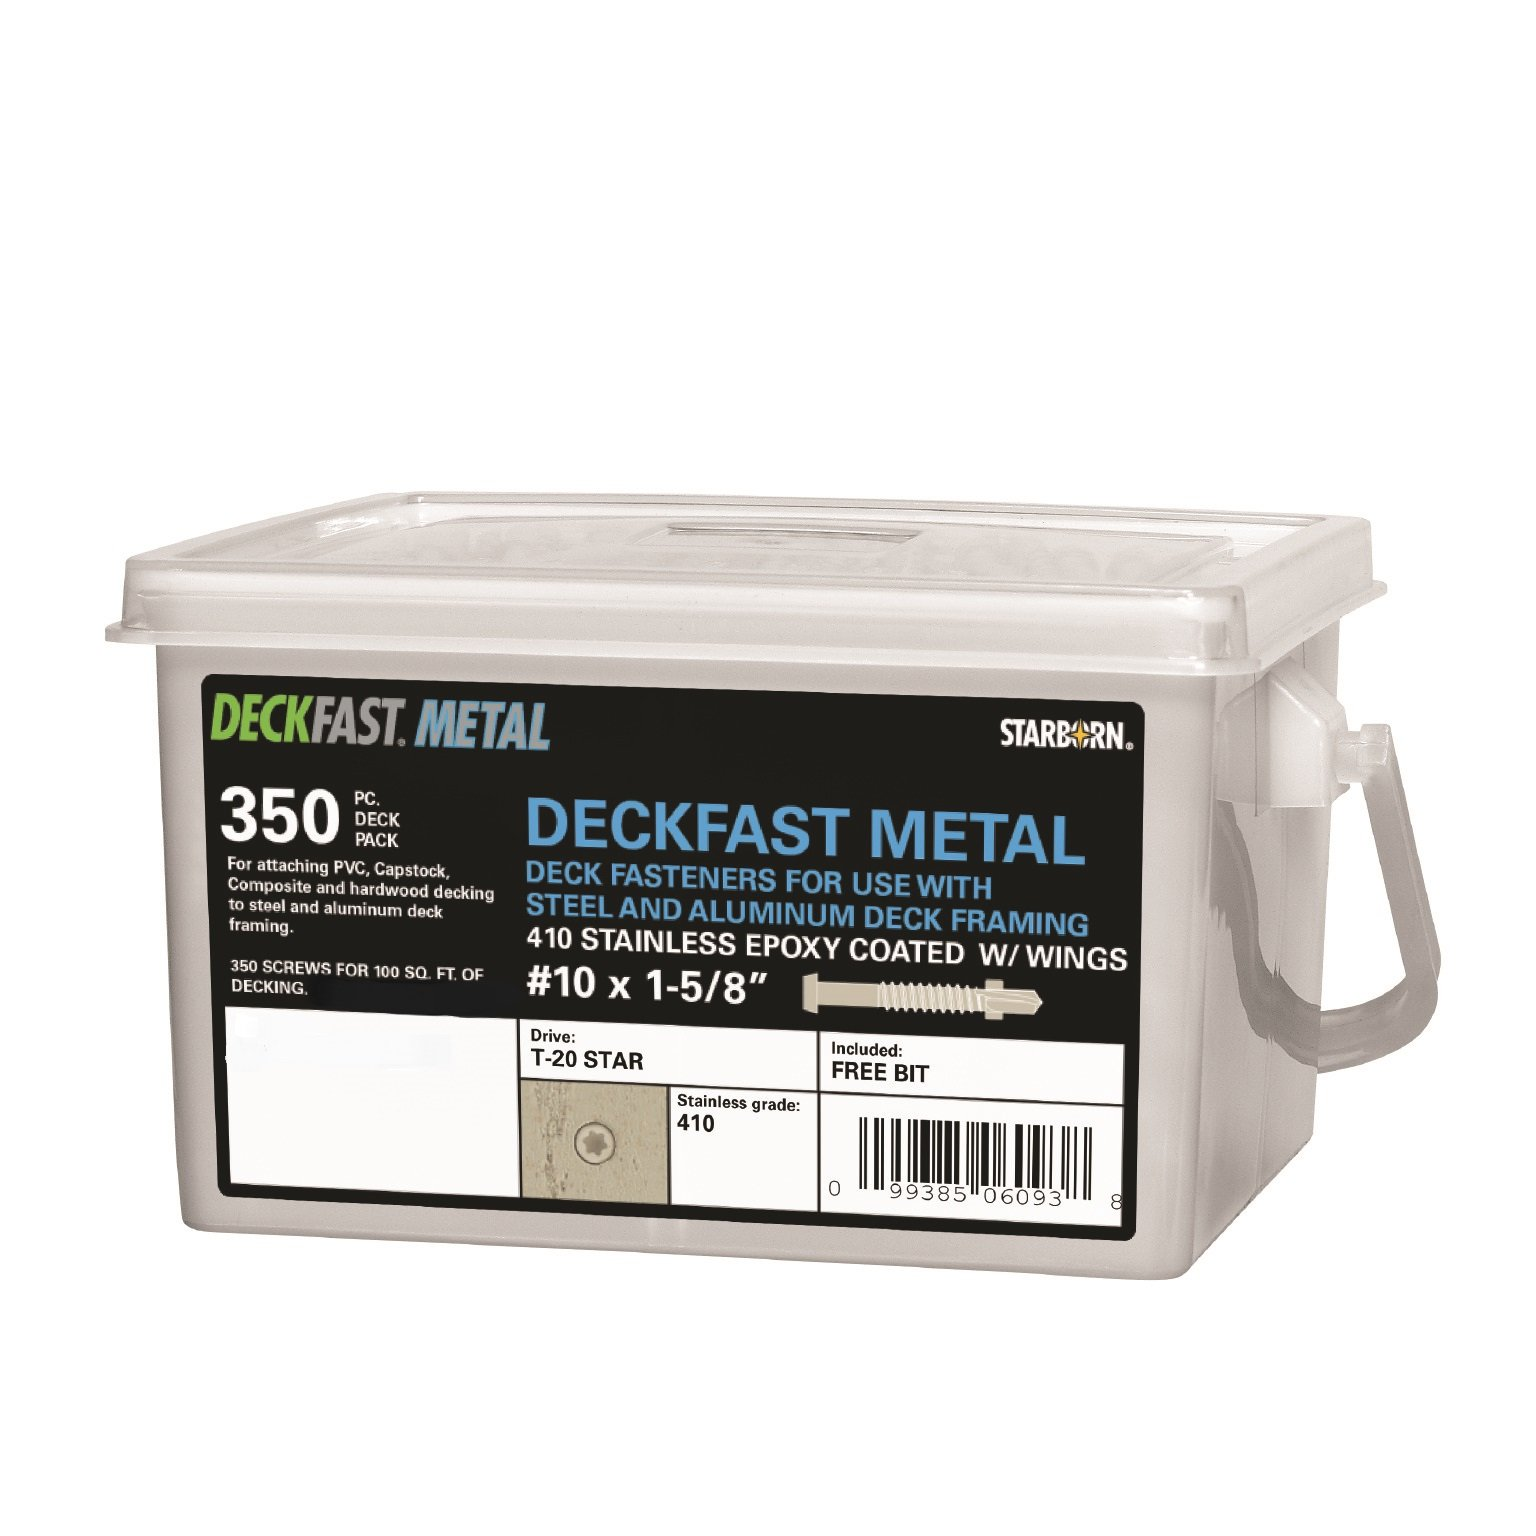 Deckfast Metal - Chocolate (#71) - 350 pc. Deck Pack - 1-5/8'' Self Drill - Type 410 Stainless Steel Deck Fastener for Use With Metal Joists & Trex Elevations